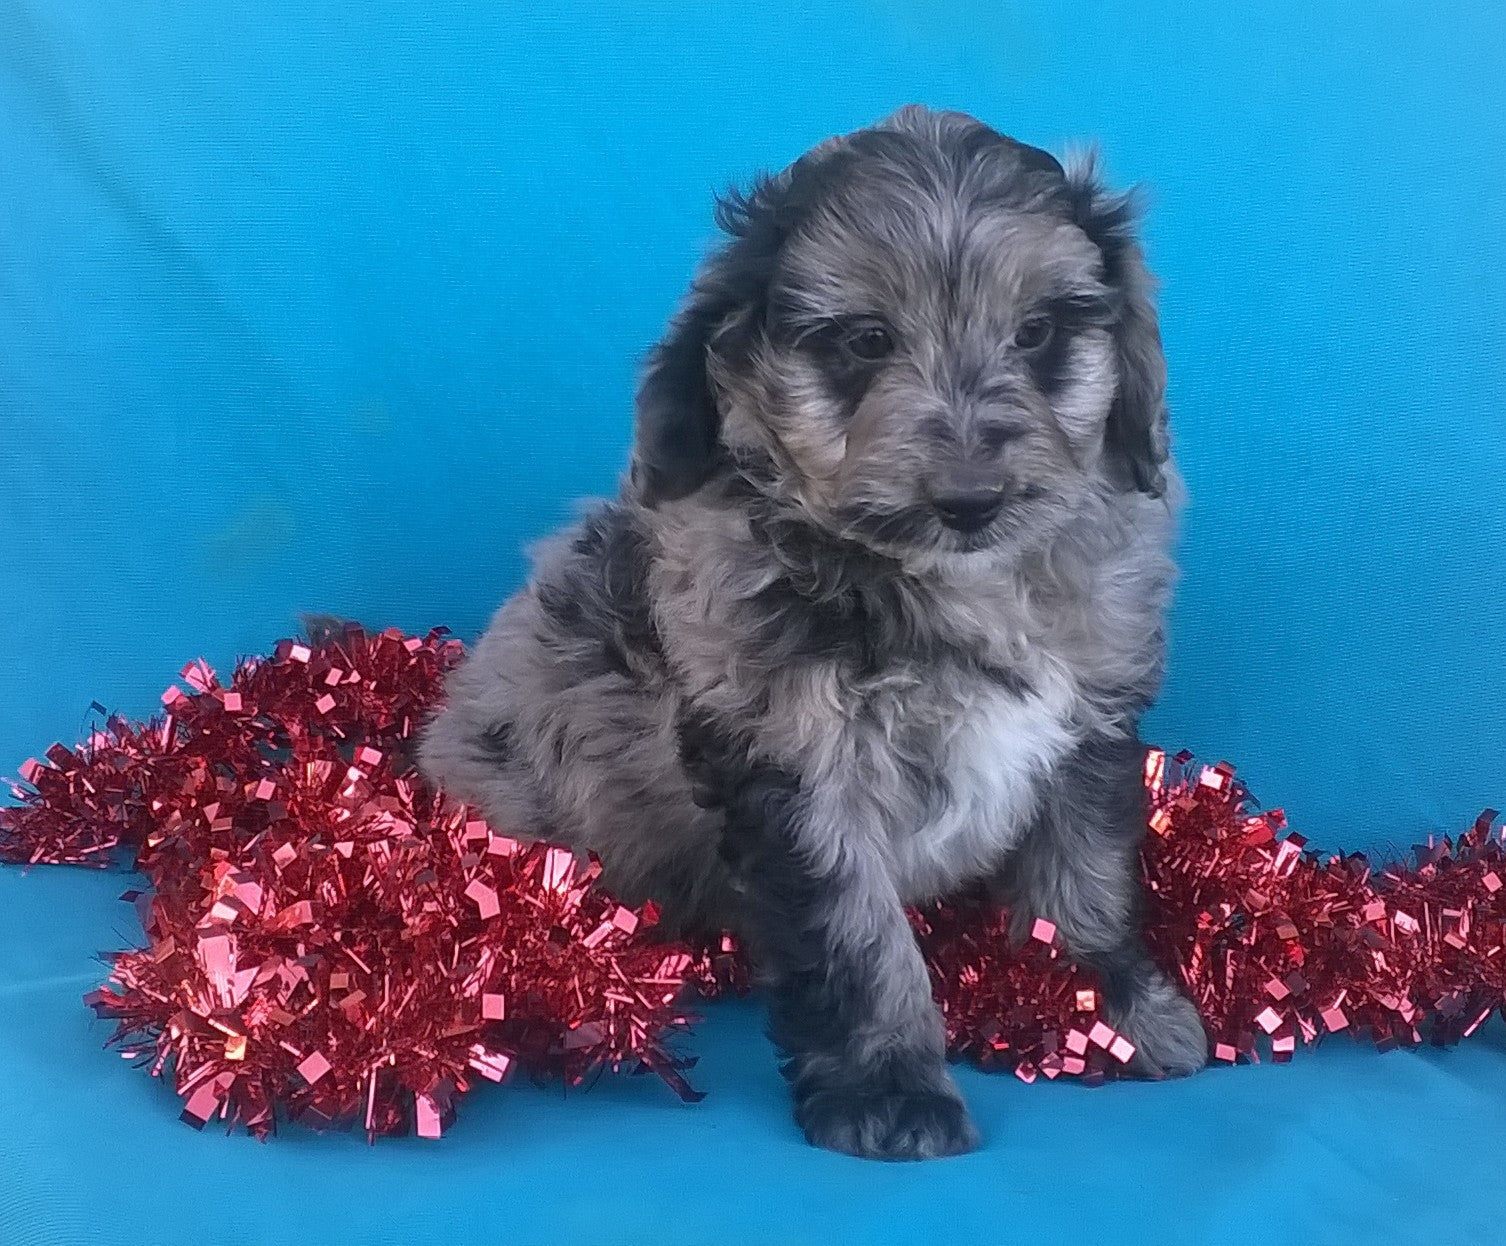 Mini Aussiedoodle Female Blue Merle White Puppy For Sale Petunia Ber Ac Puppies Llc